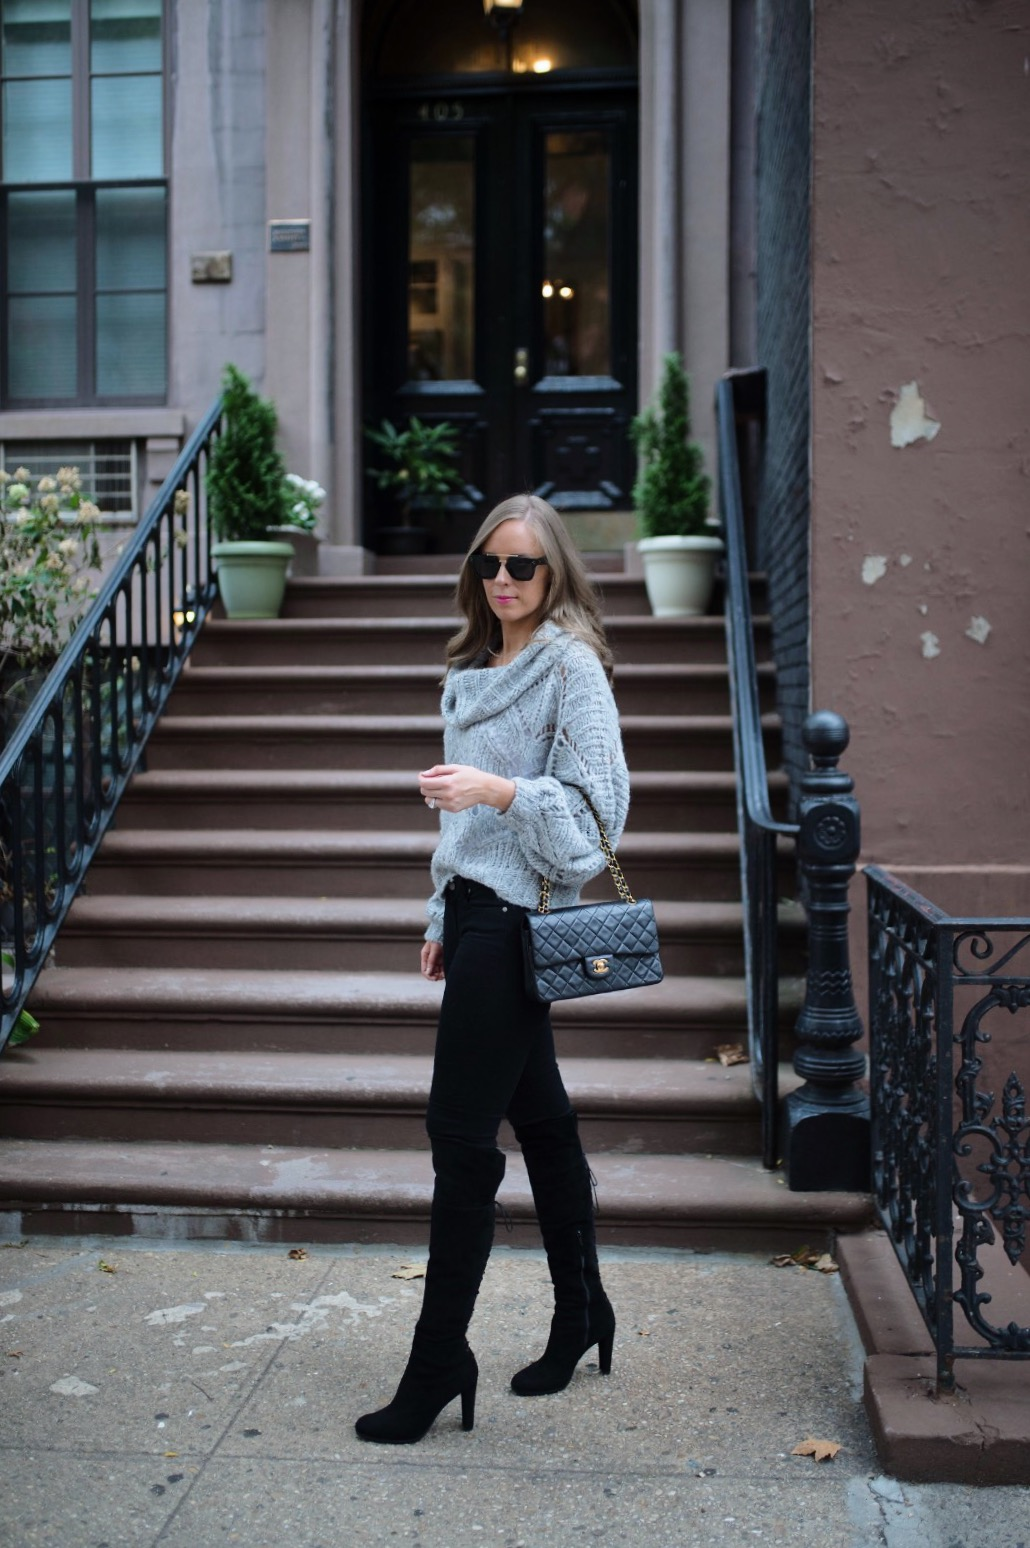 minimalist outfit style pinterest fashion ideas gray and black outfit blogger new york street style 1